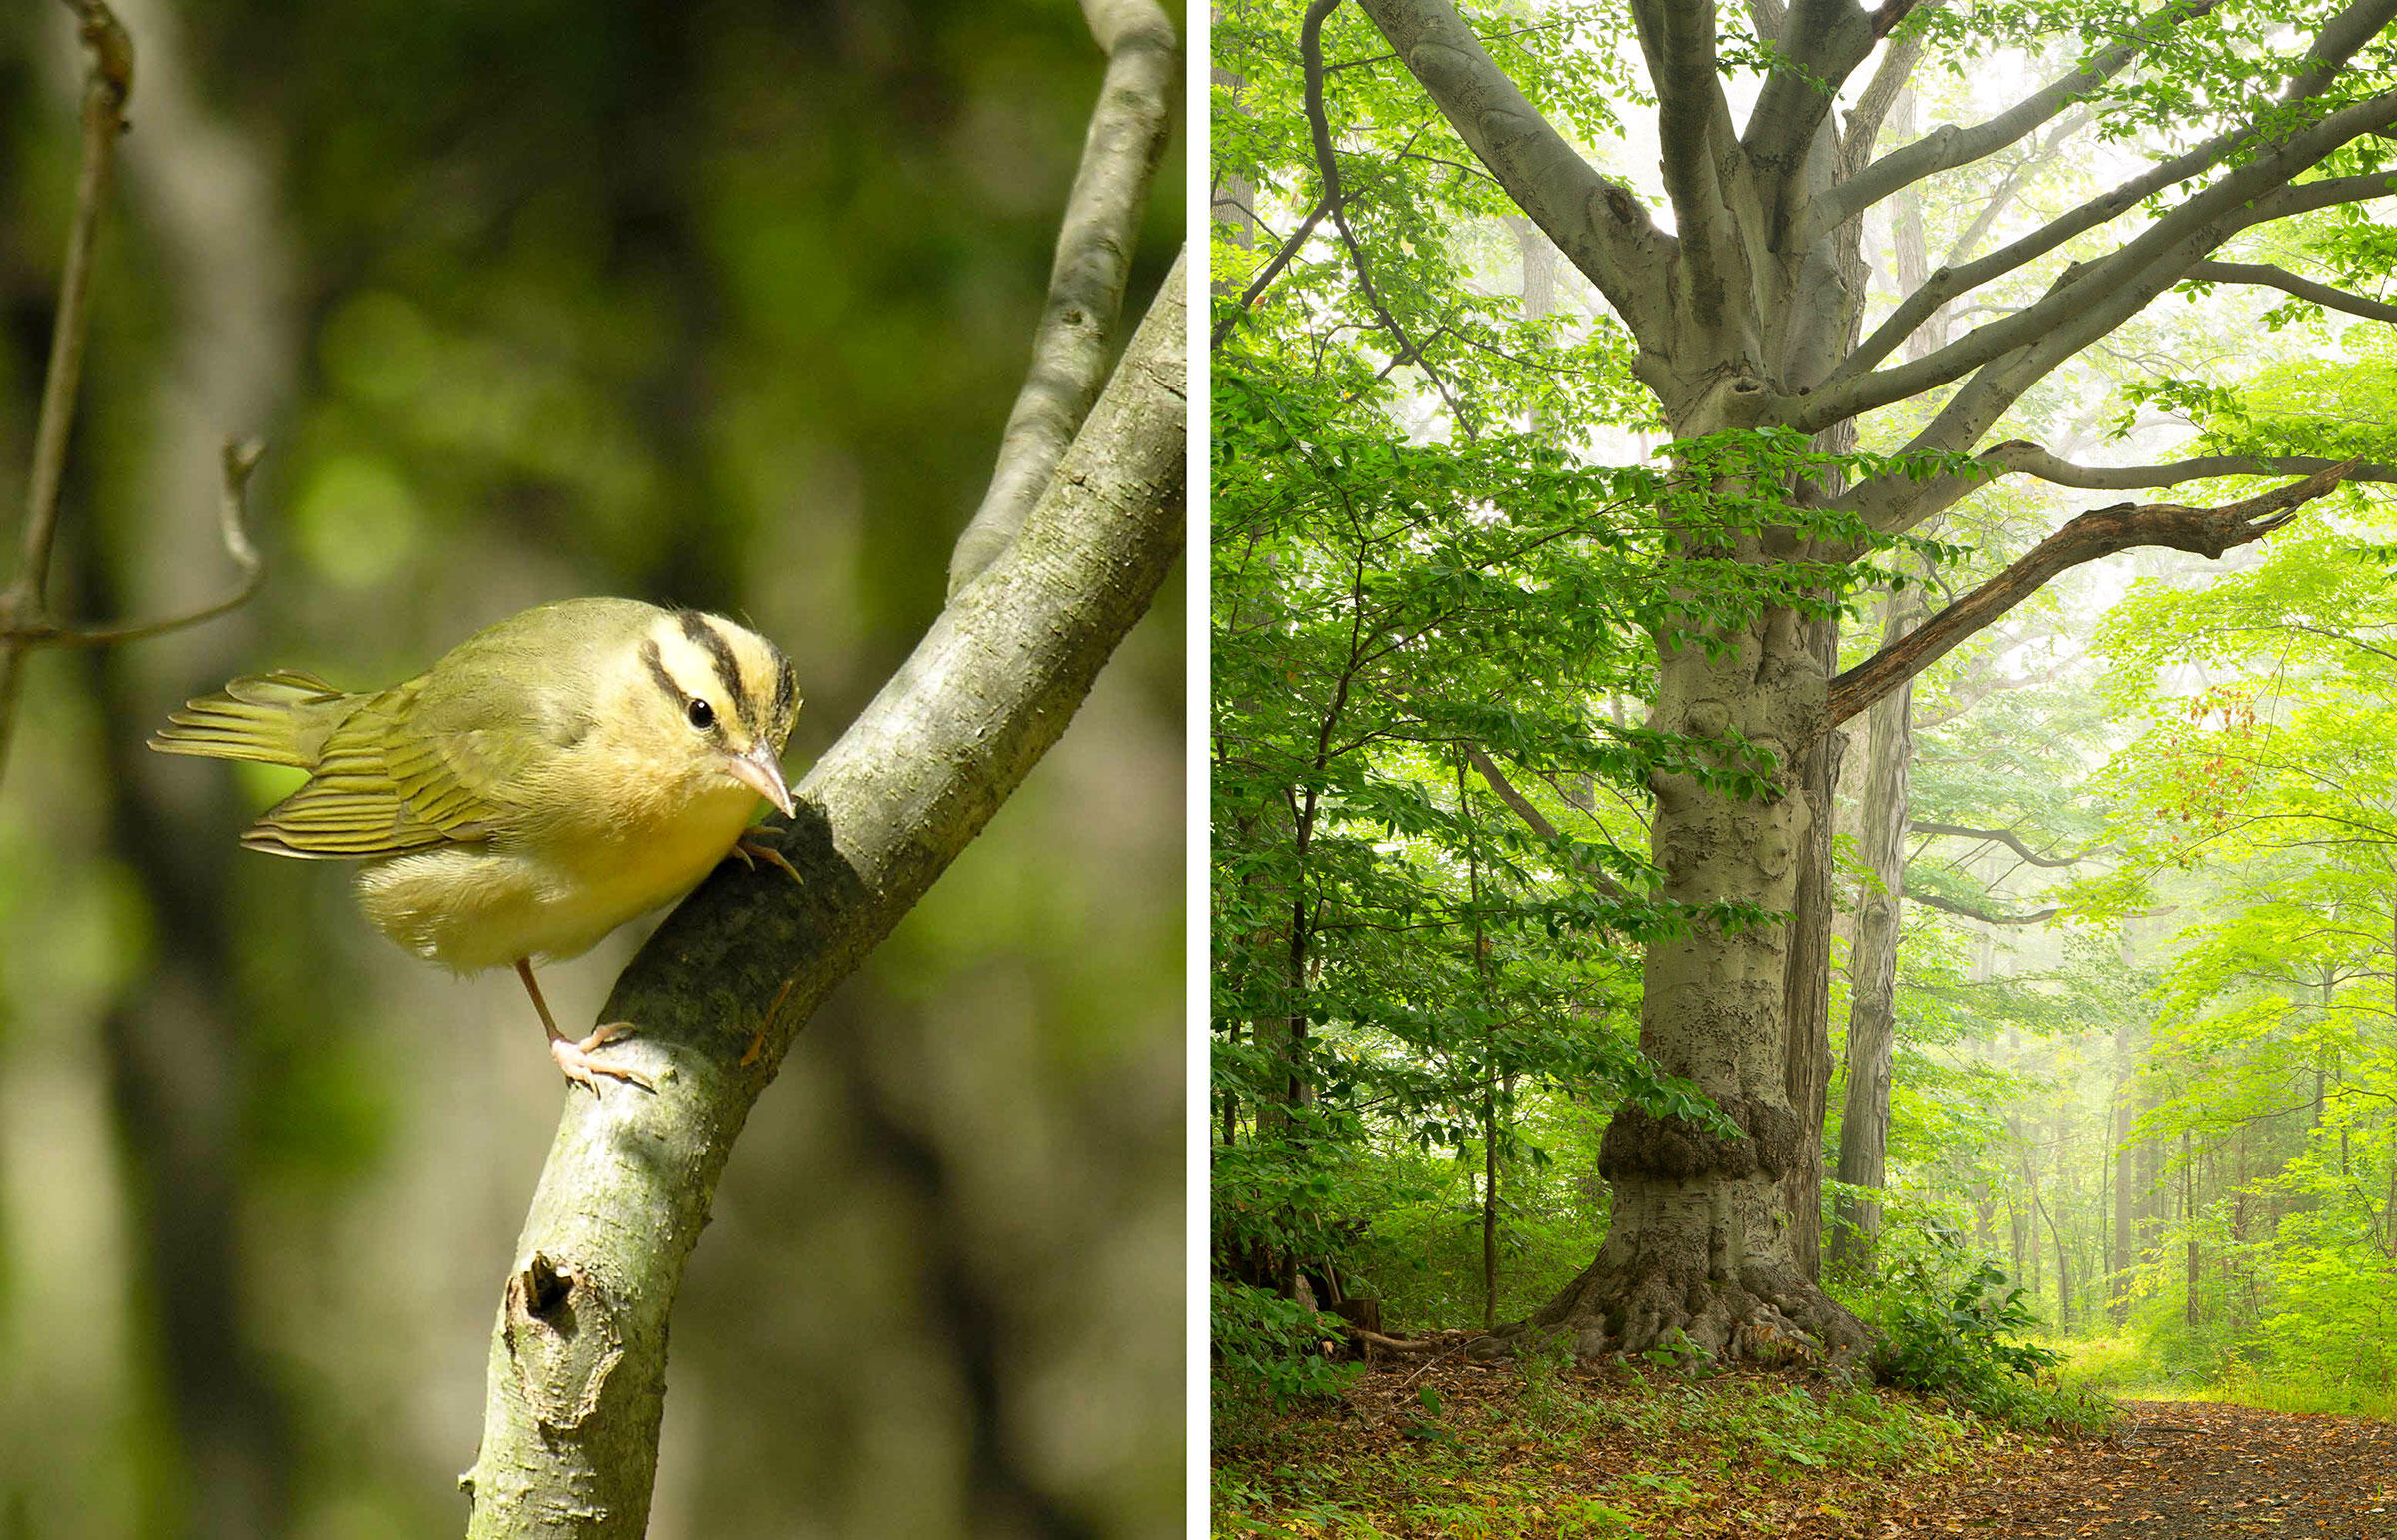 From left: Worm-eating Warbler. Photo: Frode Jacobsen; American beech. Photo: age fotostock/Alamy